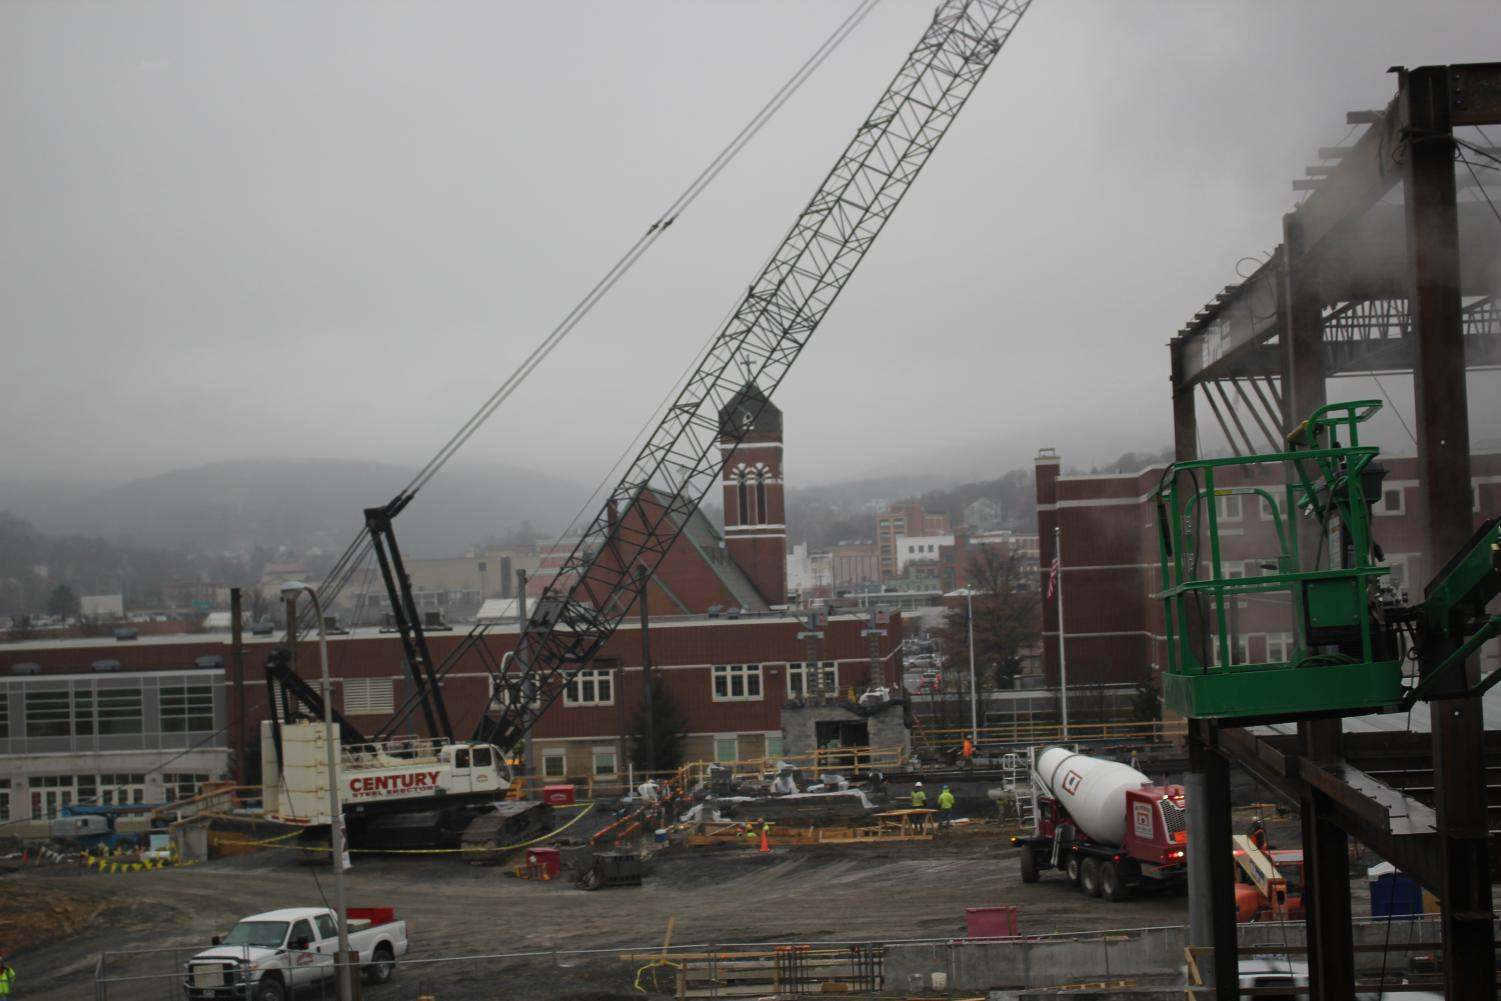 On Jan. 4 construction crews continue work on the new building. Anticipated completion dated is July 2020.